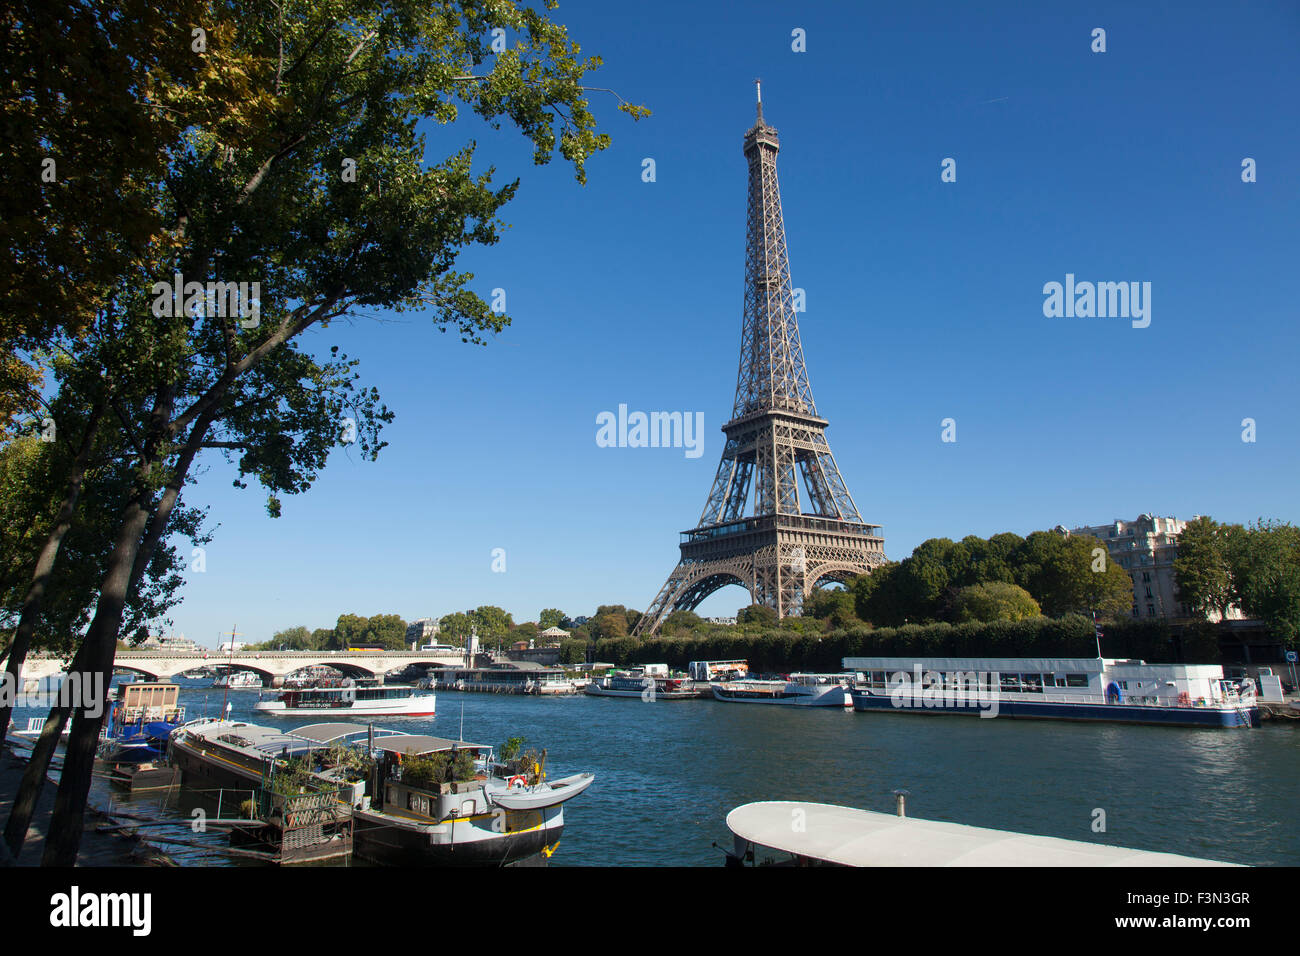 Eiffel Tower and River Seine in Paris - Stock Image